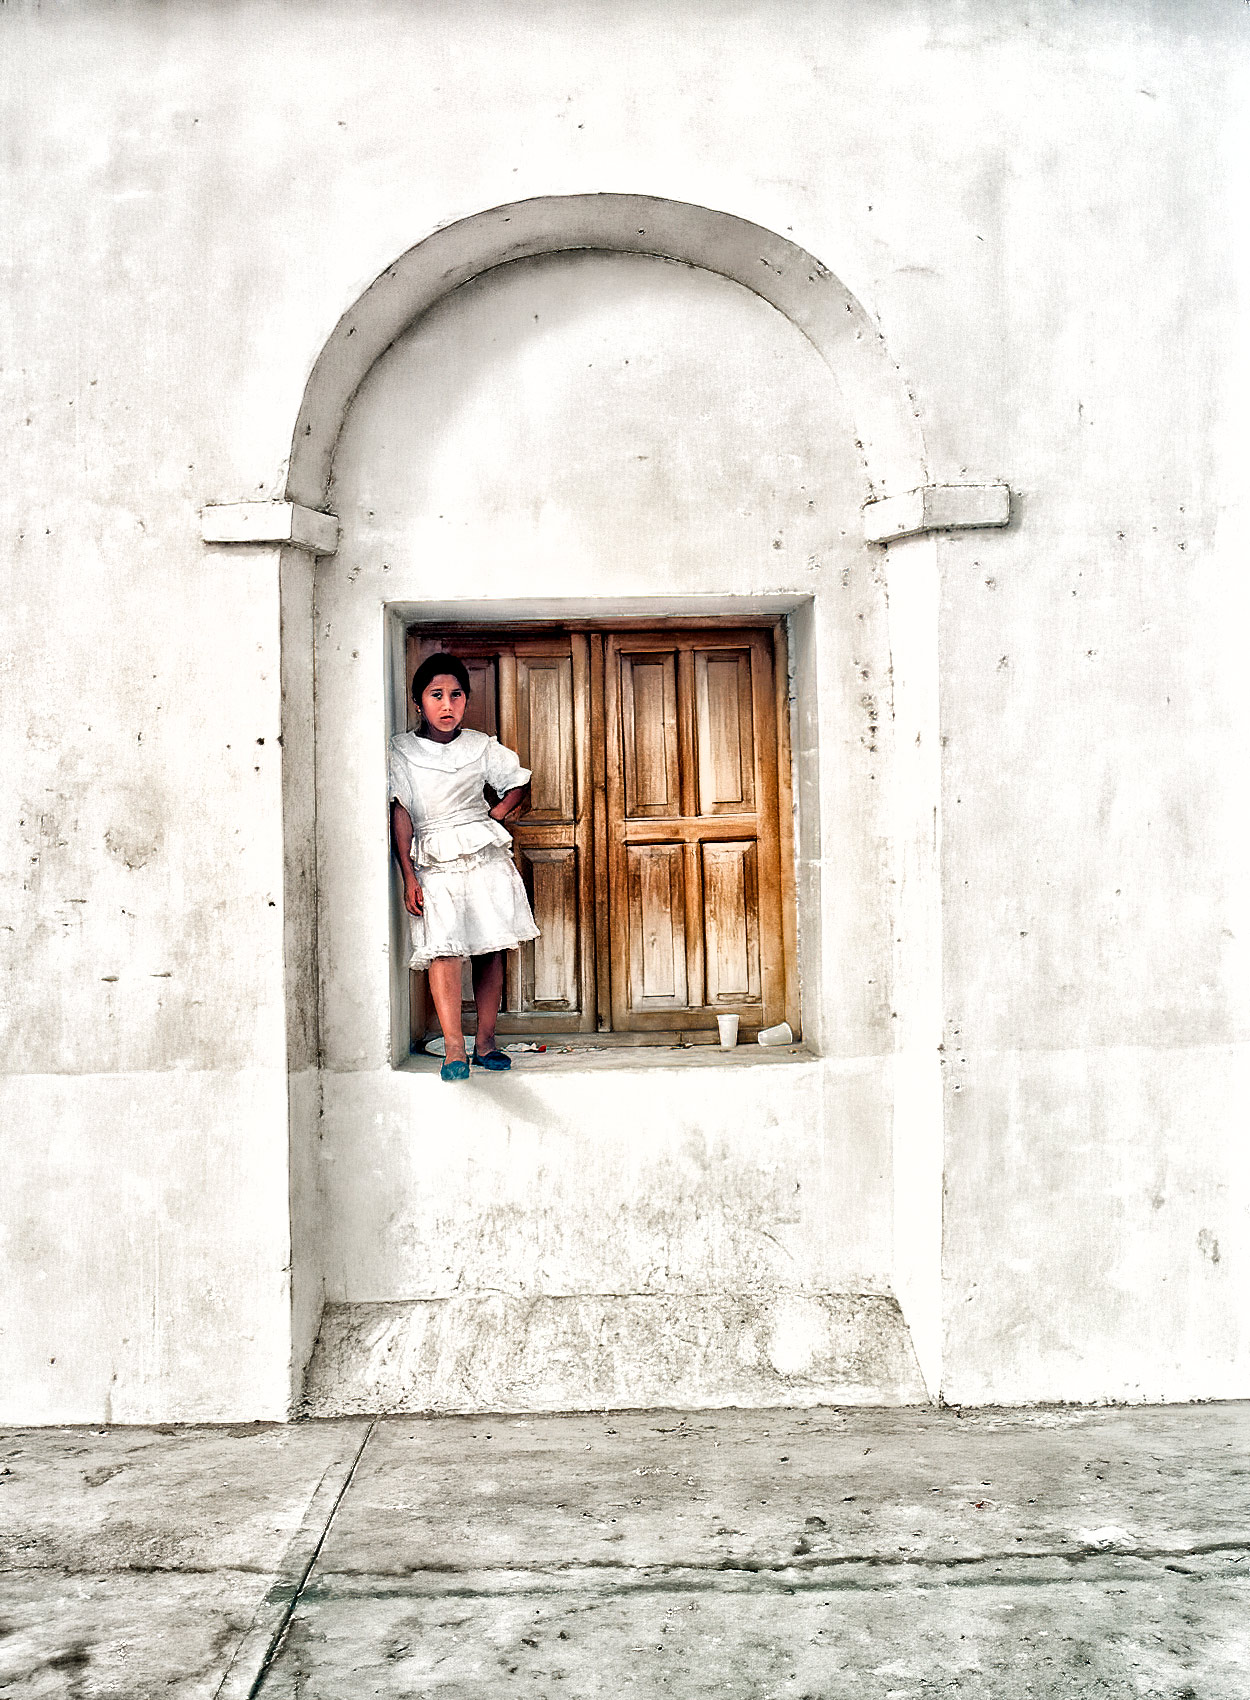 a-young-guatemalan-girl-stands-in-a-windowsill-to-watch-a-festival-in-flores